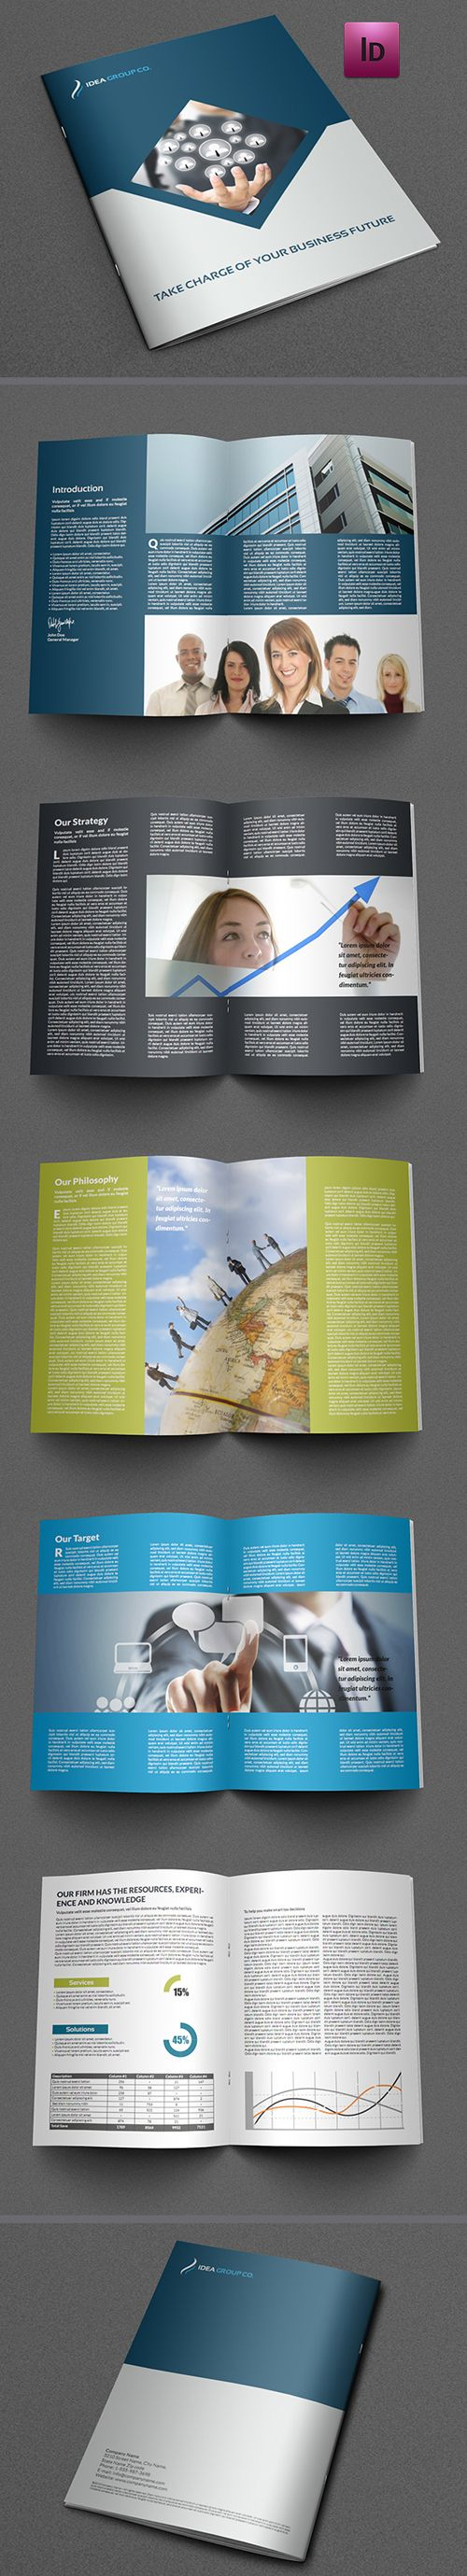 Best Folder Images On   Brochures Flyer Design And